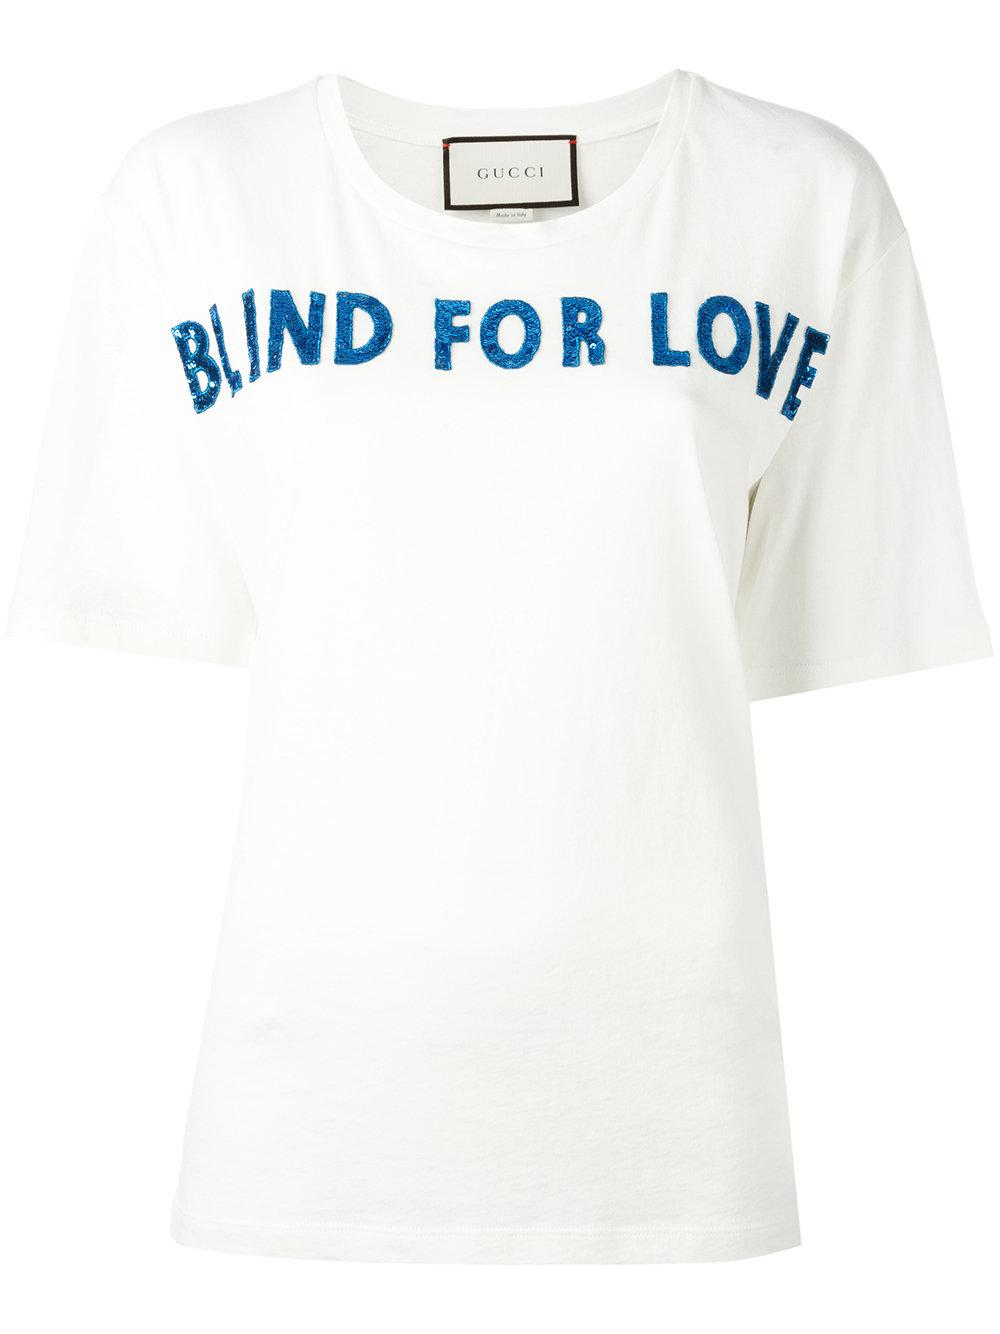 39217ba88a2 Lyst - Gucci Blind For Love T-shirt in White